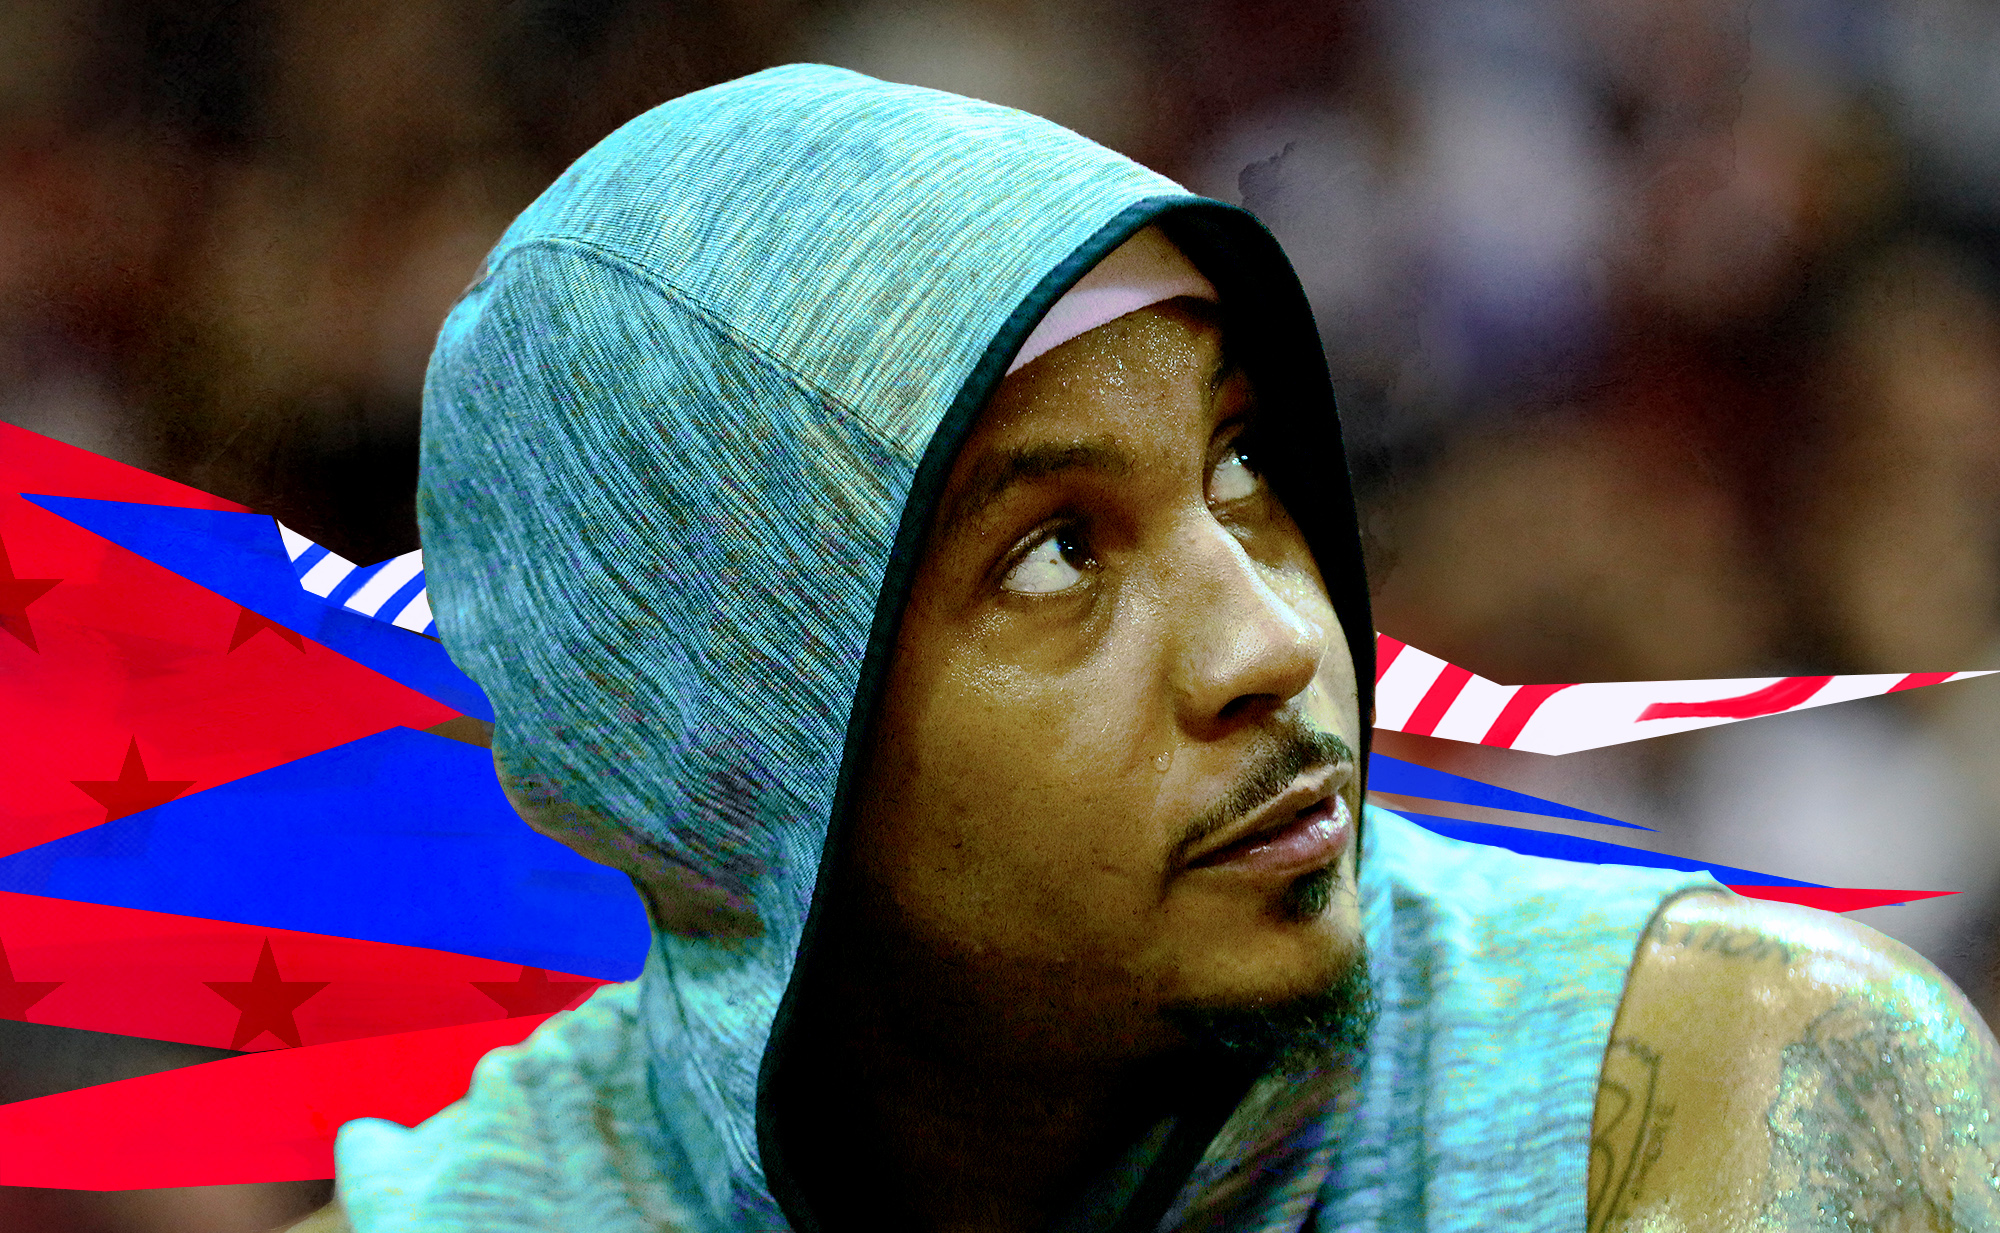 Carmelo Anthony sits on the bench during an NBA game.